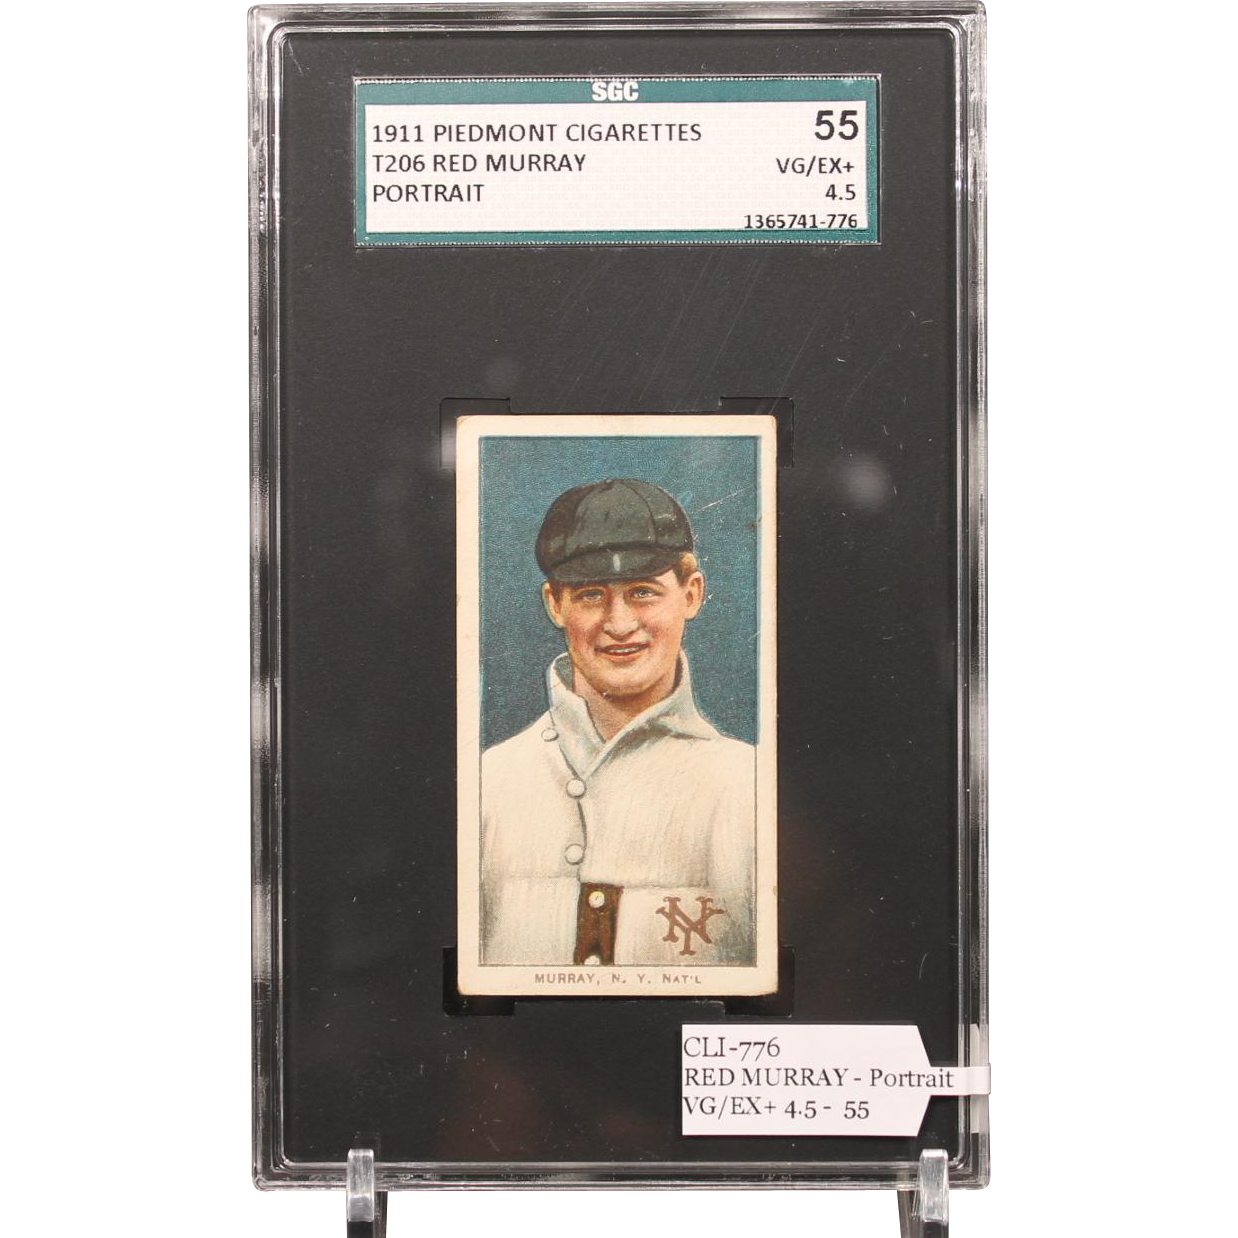 T206 RED MURRAY - Portrait SGC grade 55 VG/EX+ 4.5